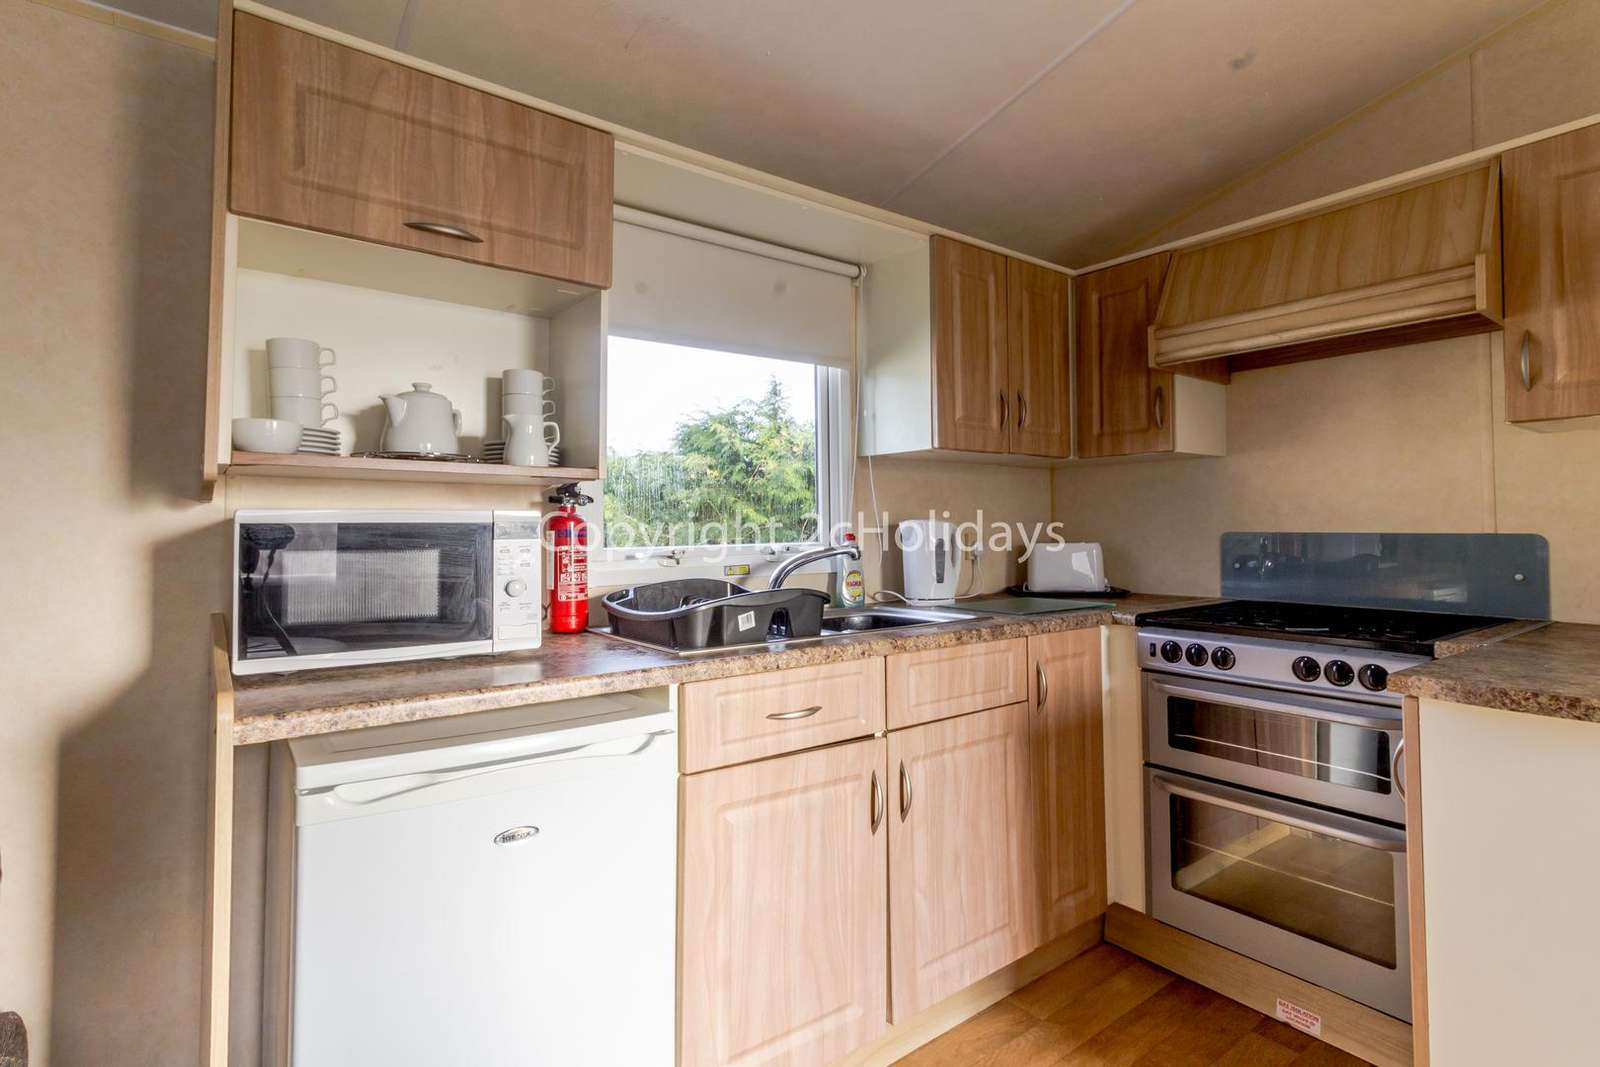 Includes a full size cooker great for self-catering Holidays!